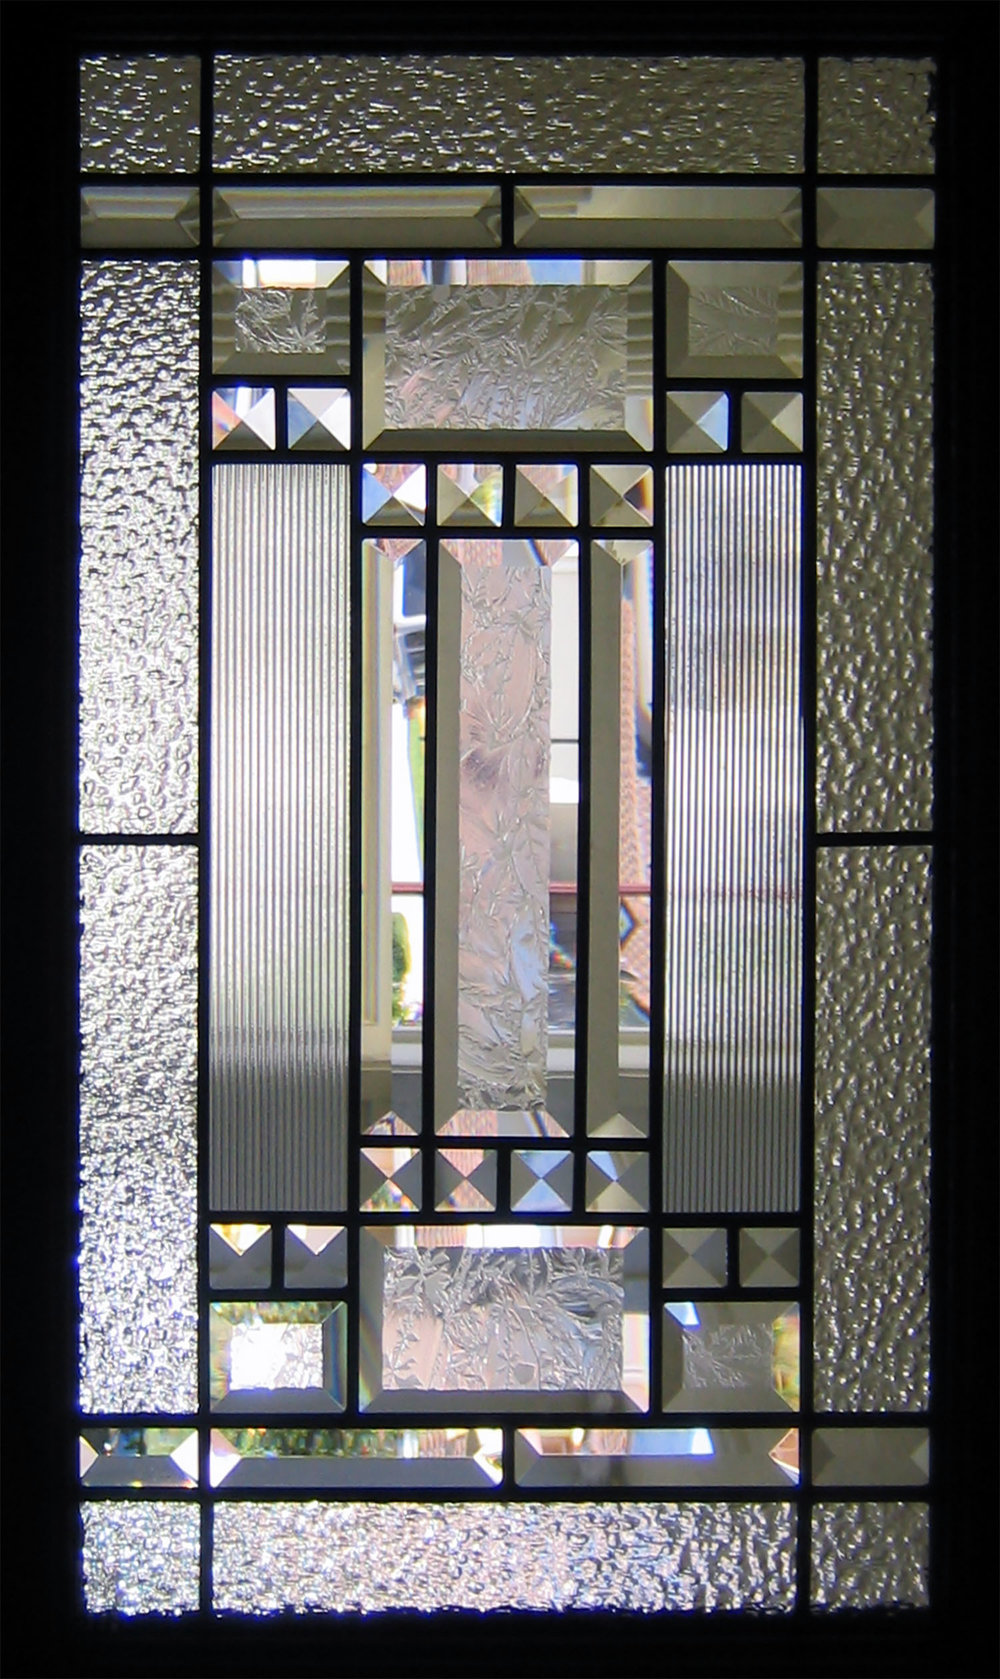 granite glass corded glass art deco frank lloyd wright pencil bevel beveled leaded glass stained glass window palo alto atherton california san francisco clear texture.jpg